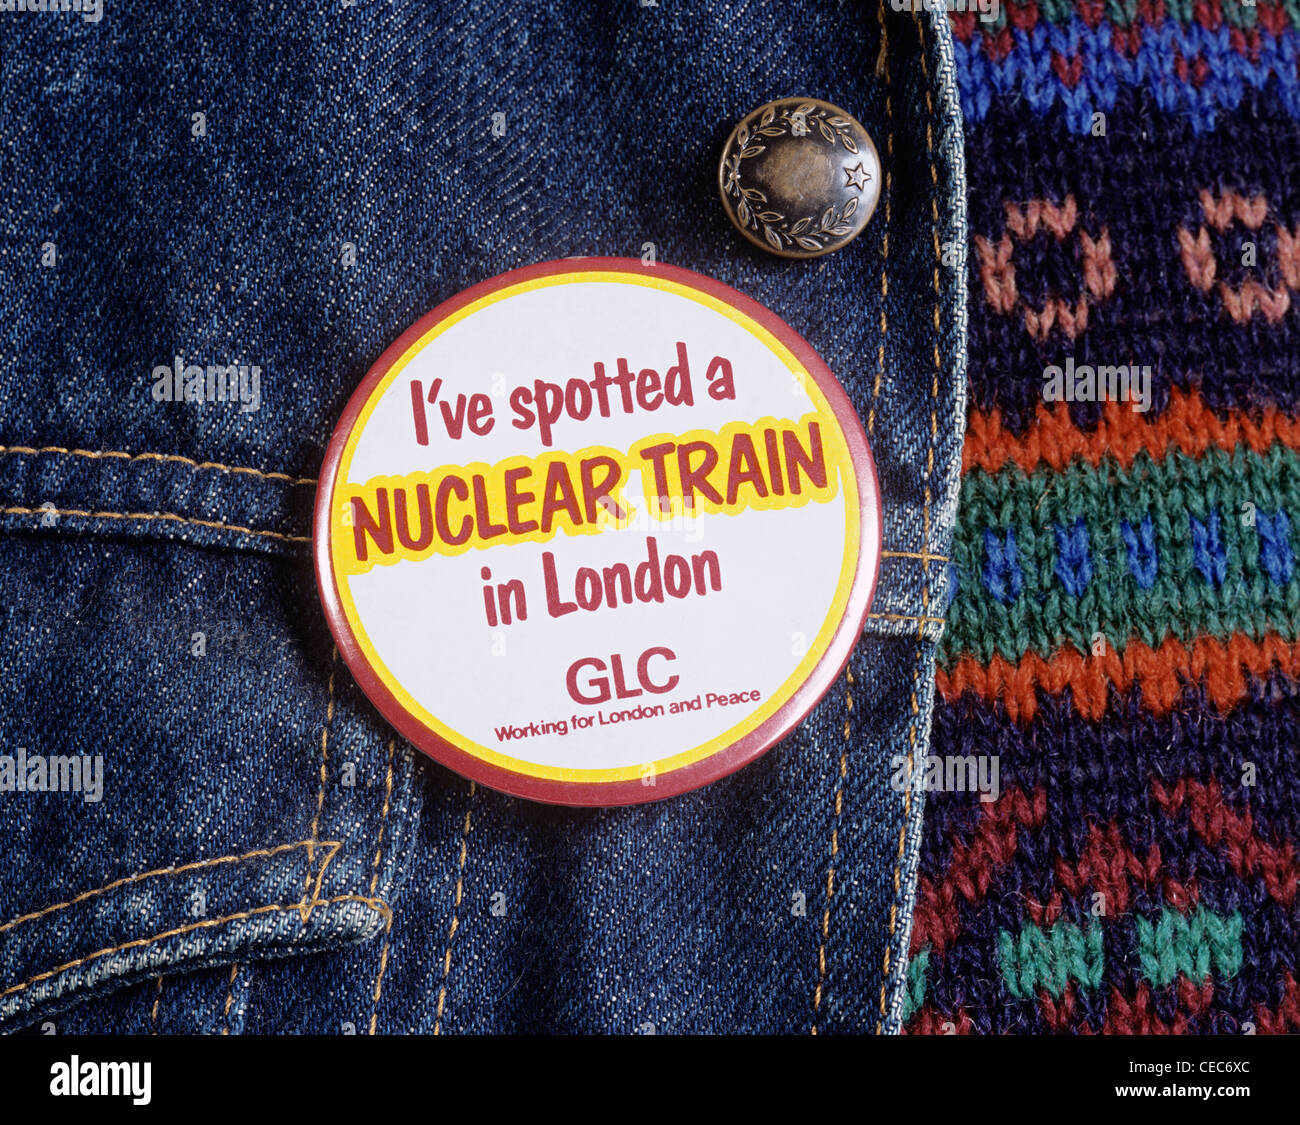 'I've spotted a nuclear train in London' badge, produced by the Greater London Council (GLC) in 1983. - Stock Image